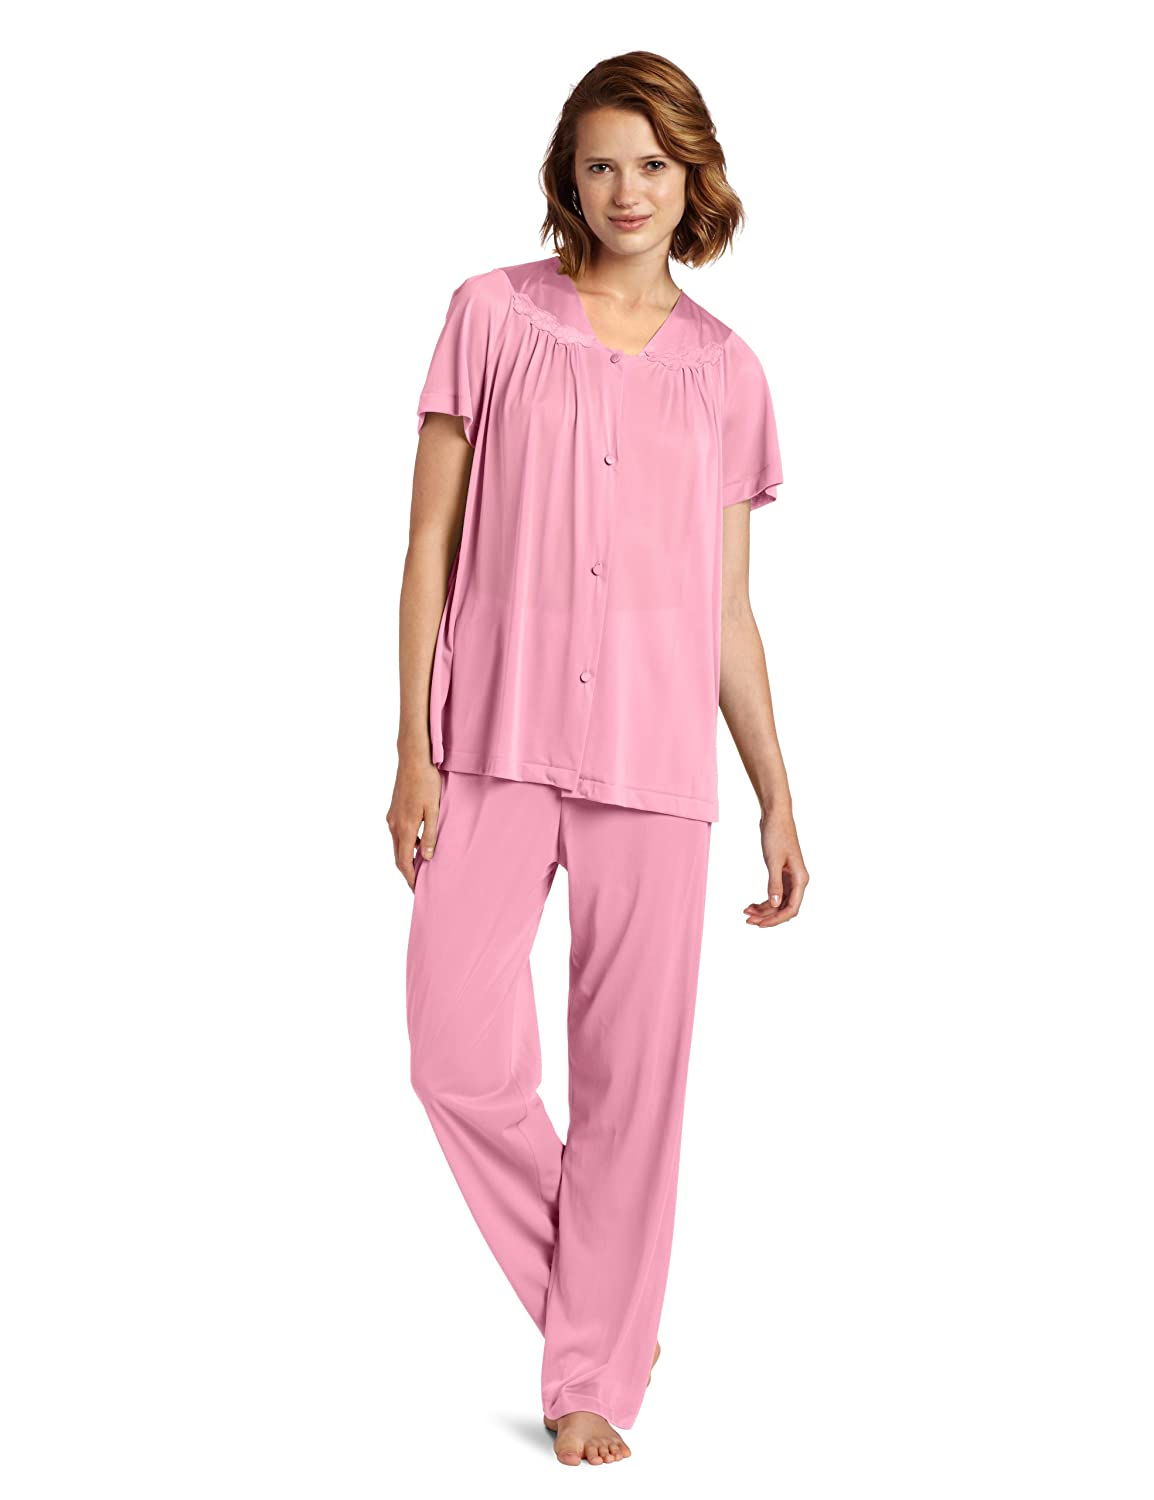 3848b7006e Exquisite Form Women s Coloratura Sleepwear Short Sleeve Pajama Set 90107  at Amazon Women s Clothing store